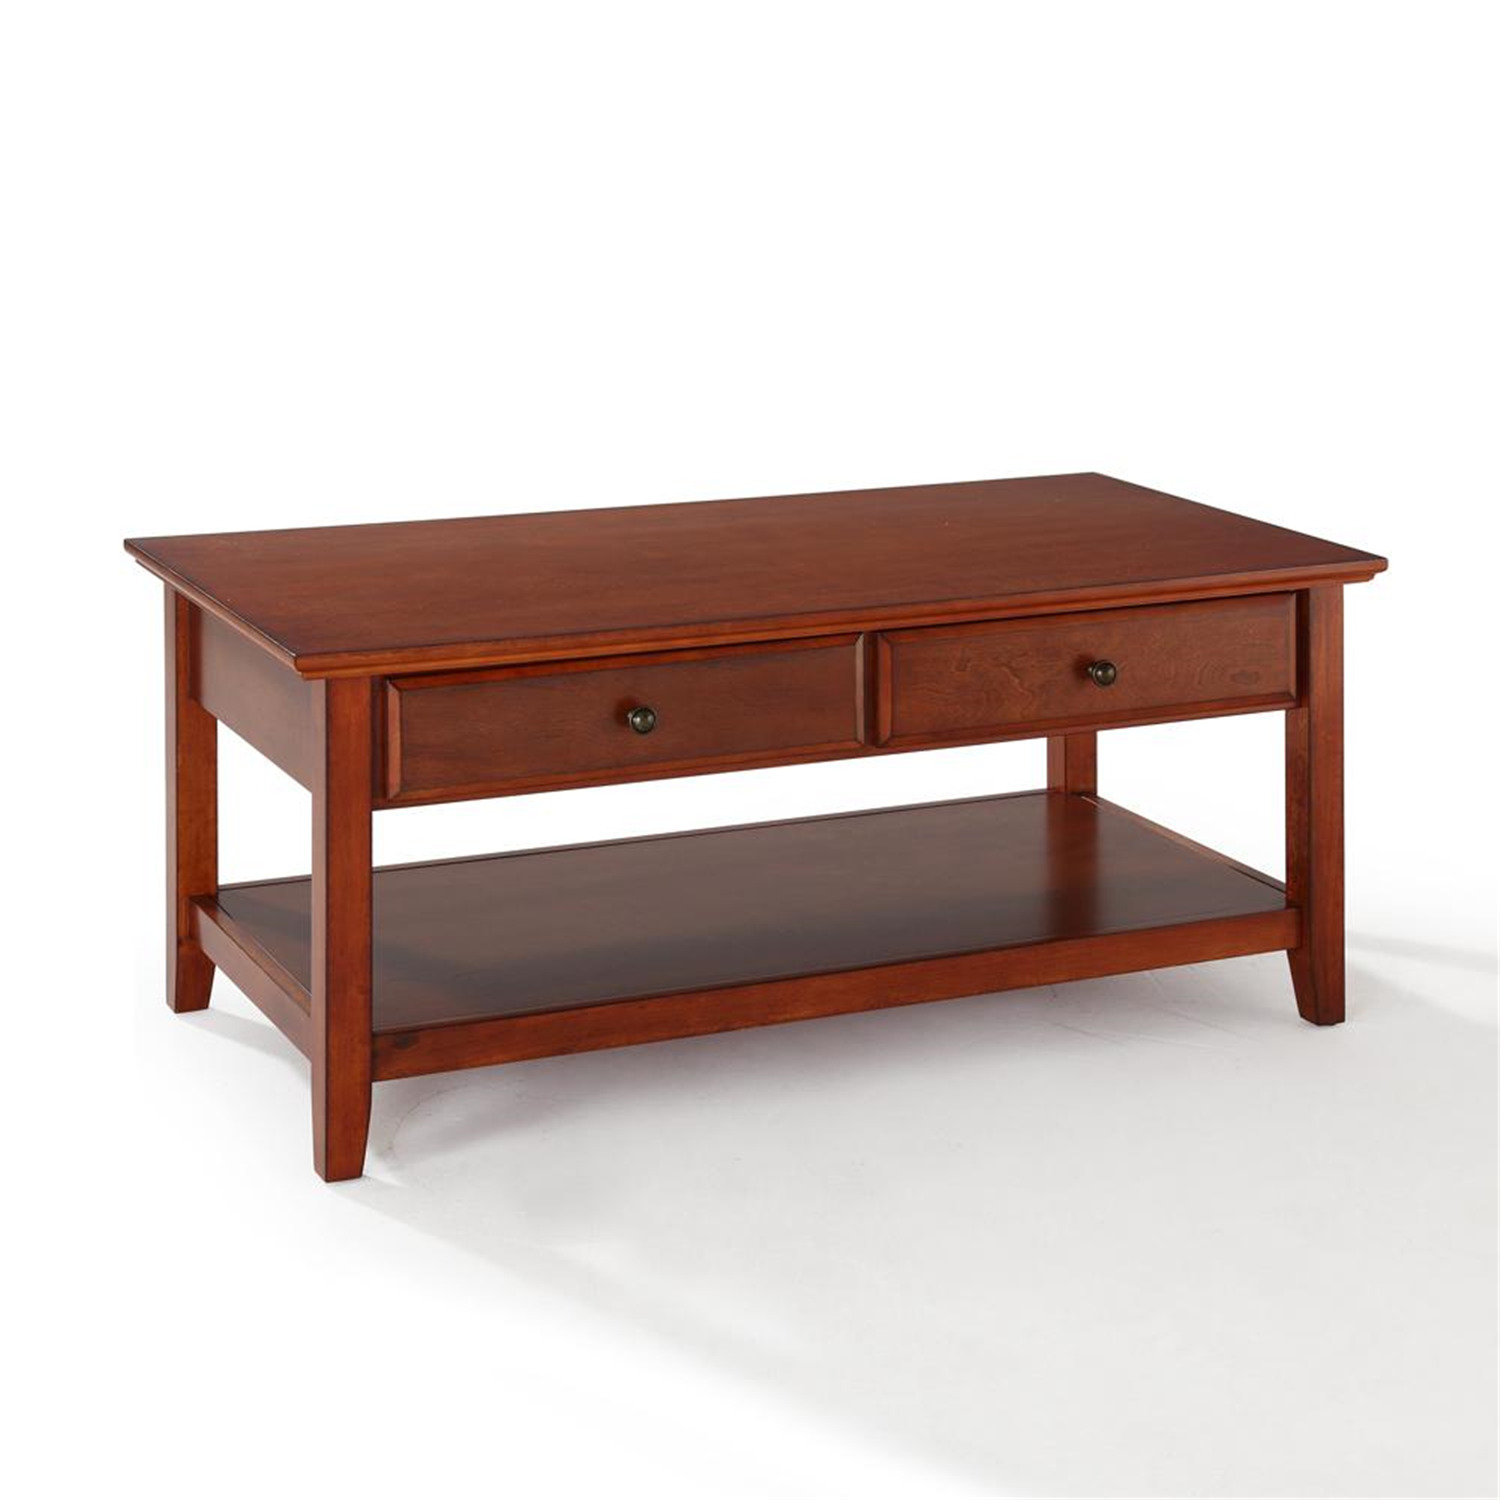 Espresso Coffee Table With Storage: Coffee Table With Storage Drawers - $229.00